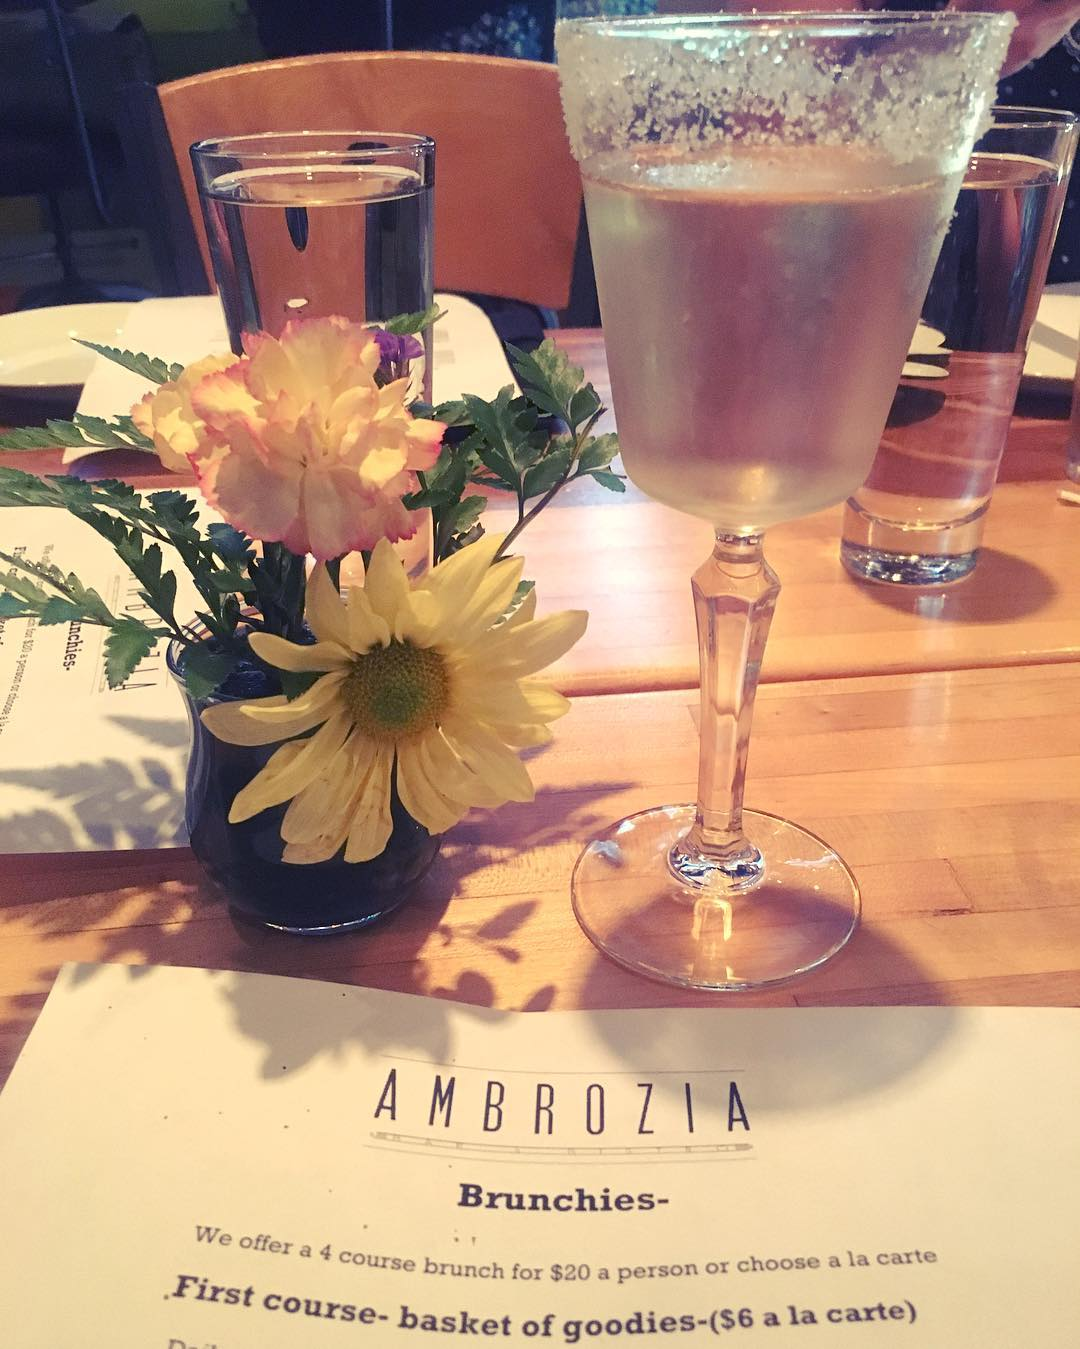 Asheville Restaurants - Ambrozia Bar & Bistro - Original Photo